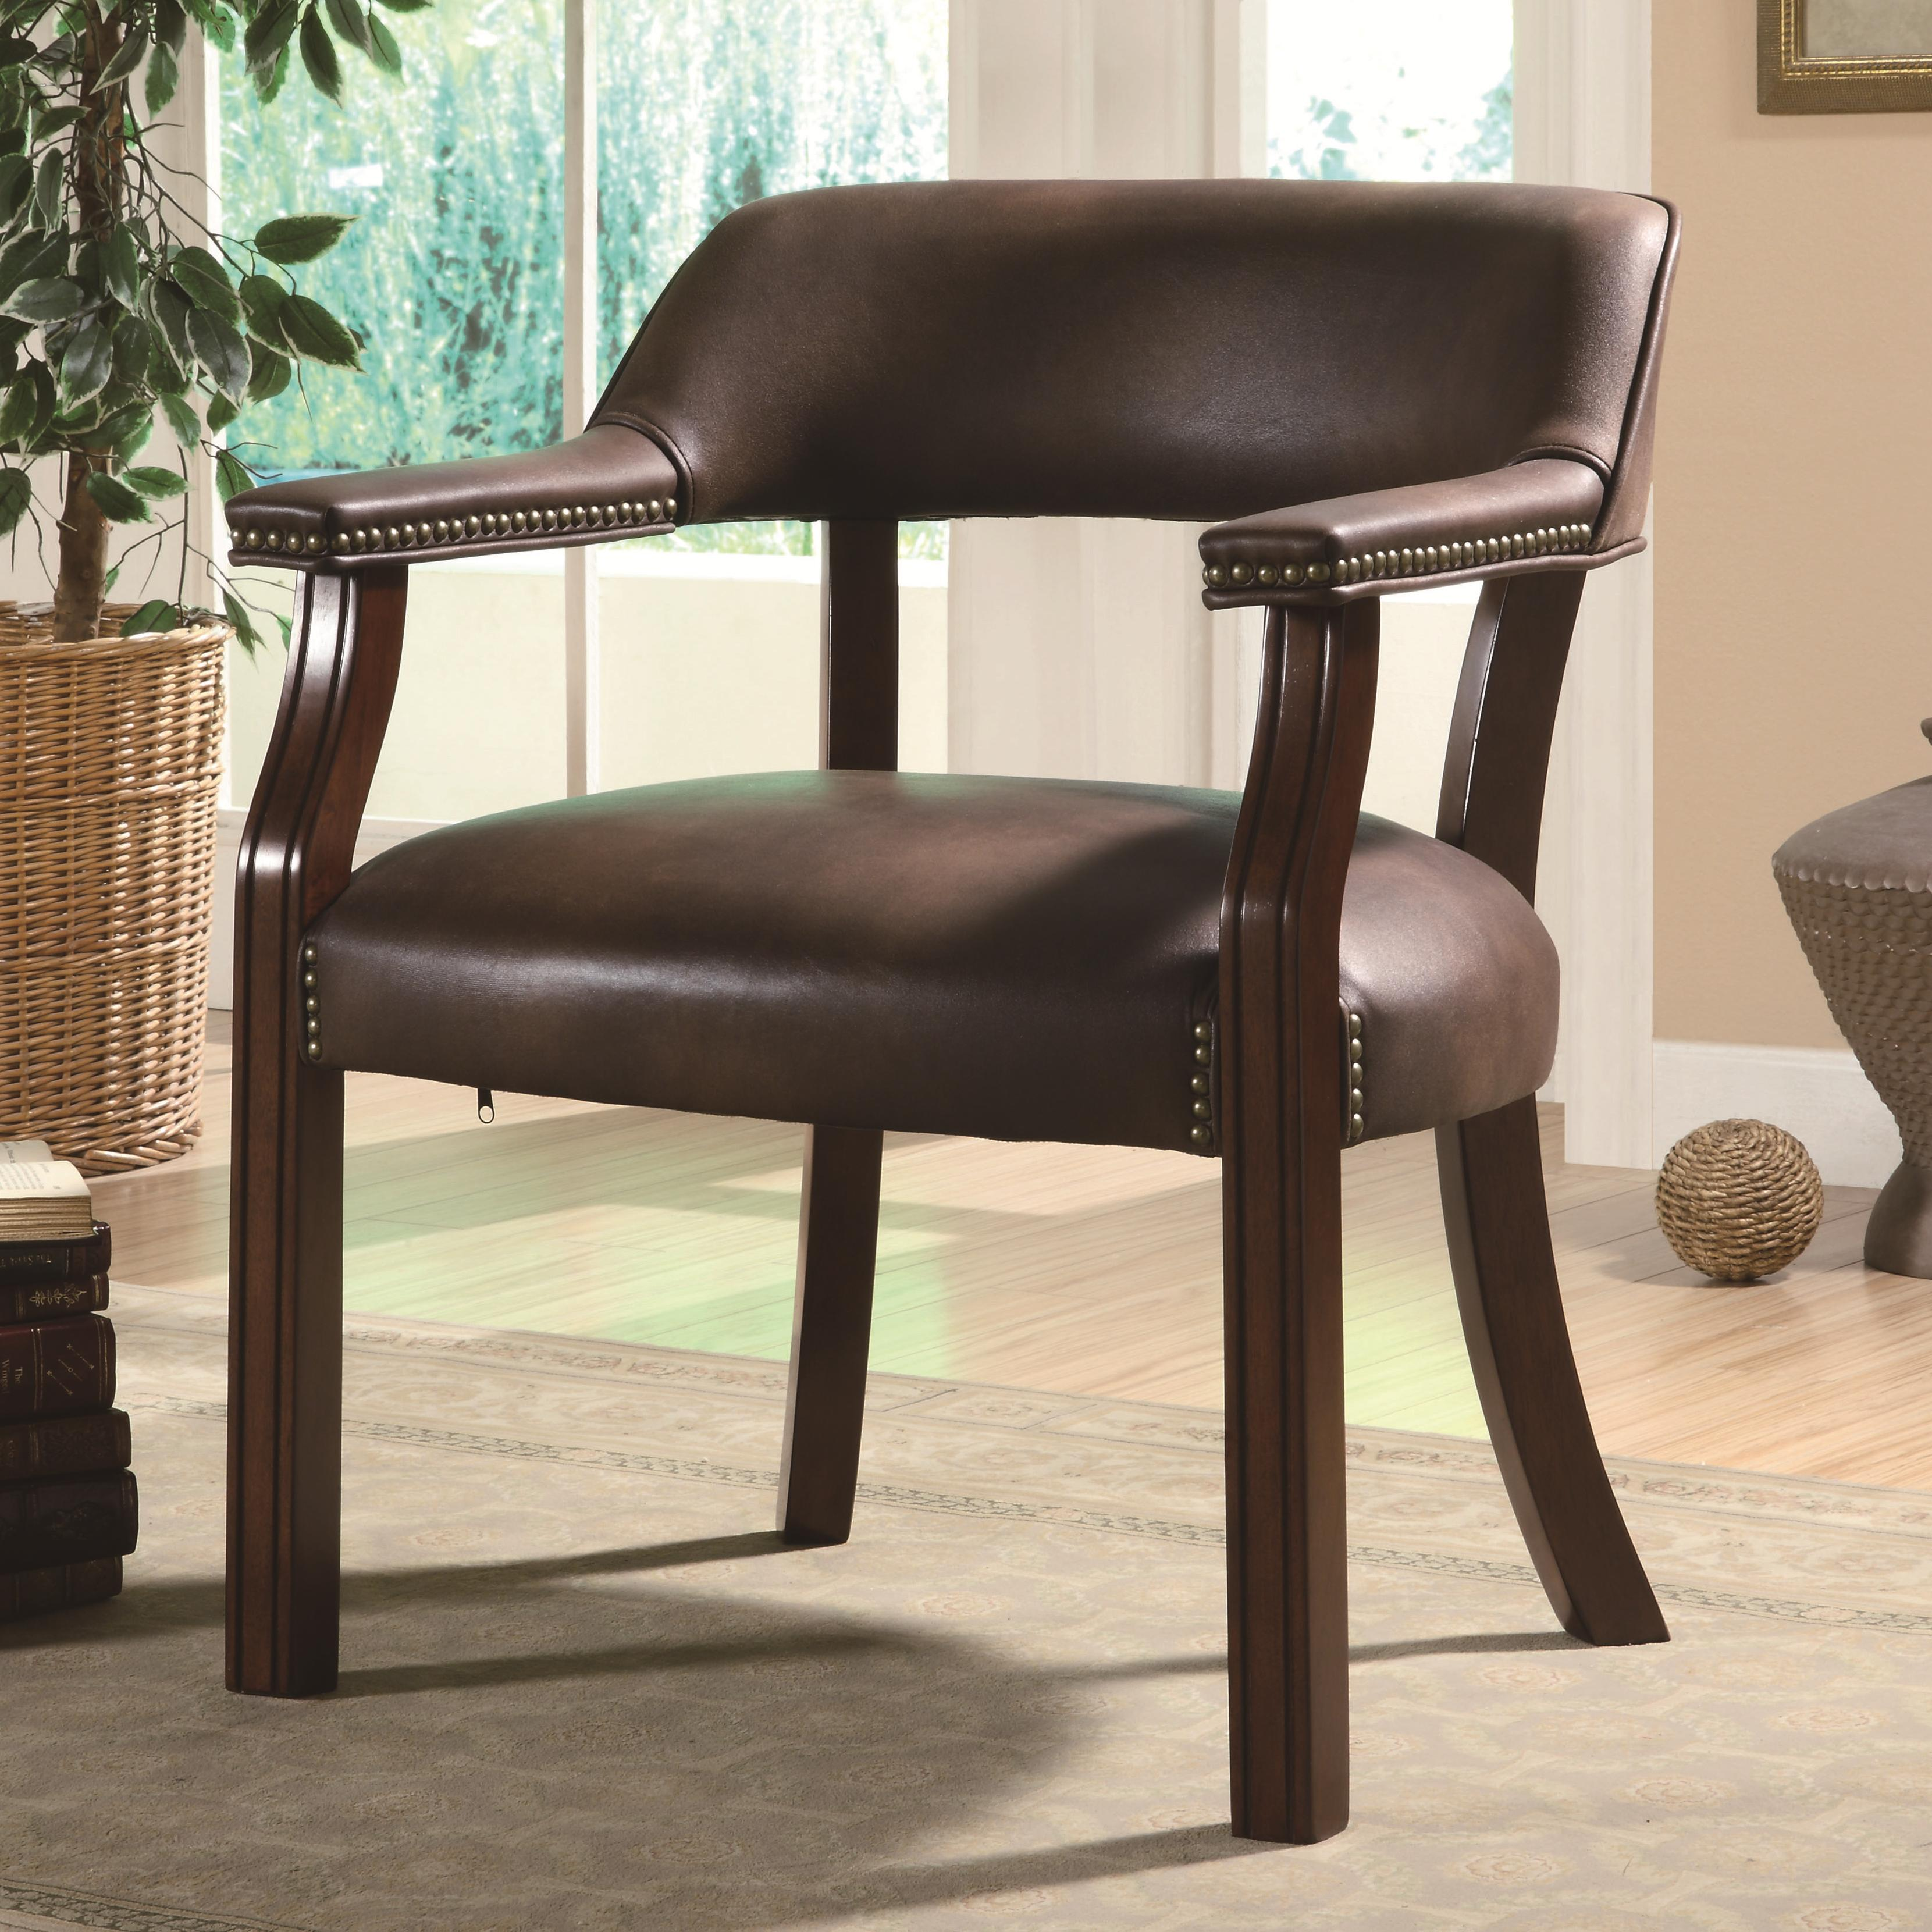 Coaster Office Chairs Office Side Chair - Item Number: 513BRN